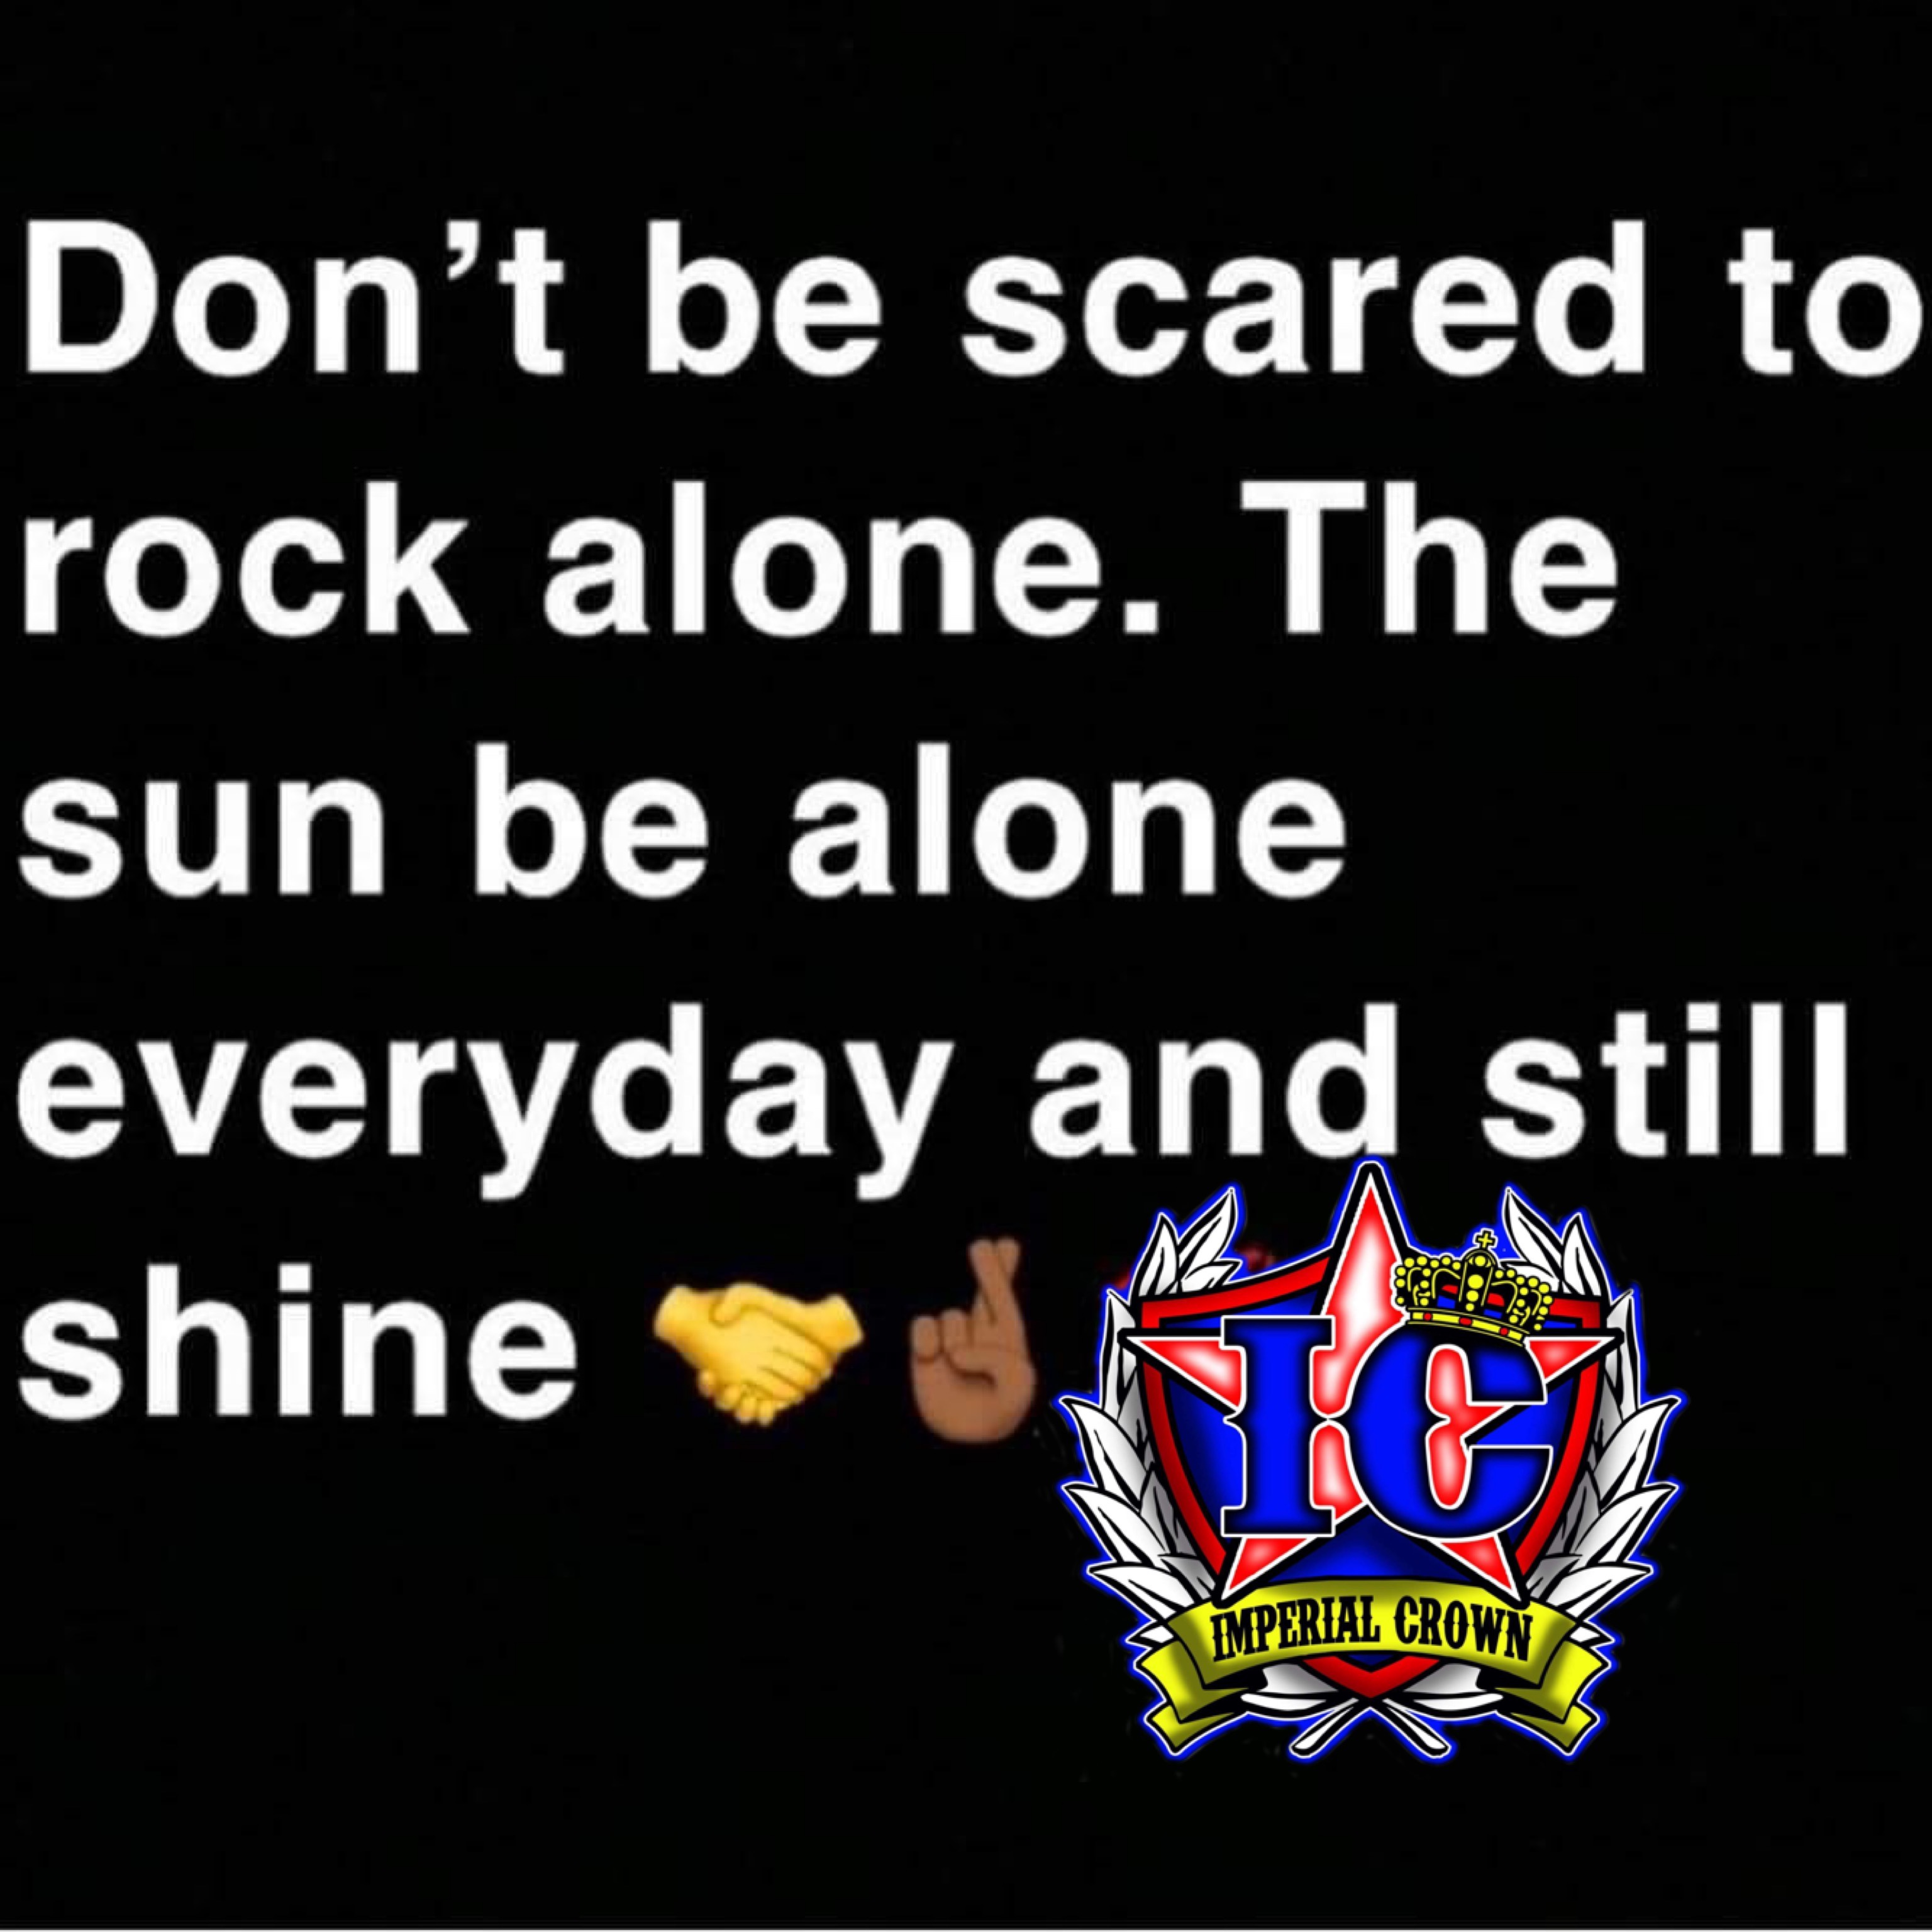 Don't be scared to Rock alone